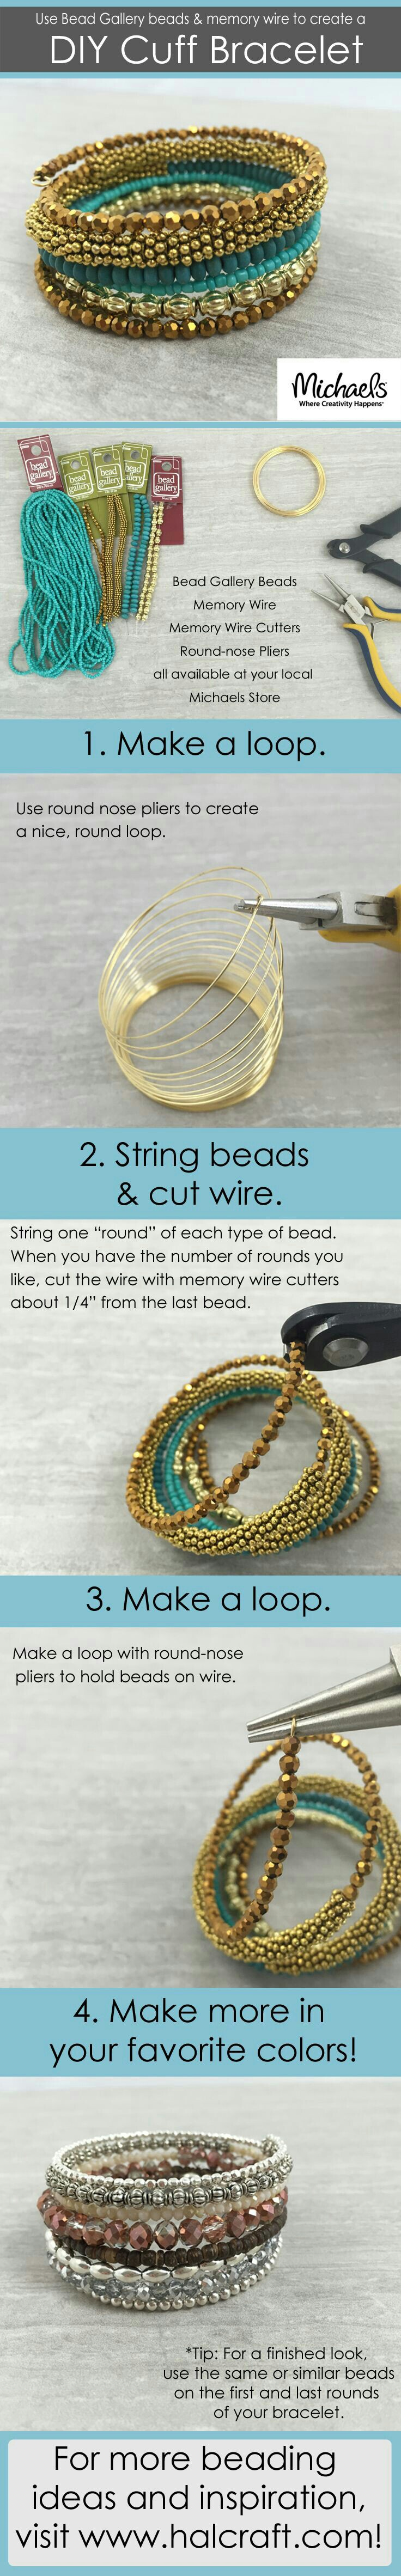 85 best Available in Michael\'s images on Pinterest | Diy jewelry ...